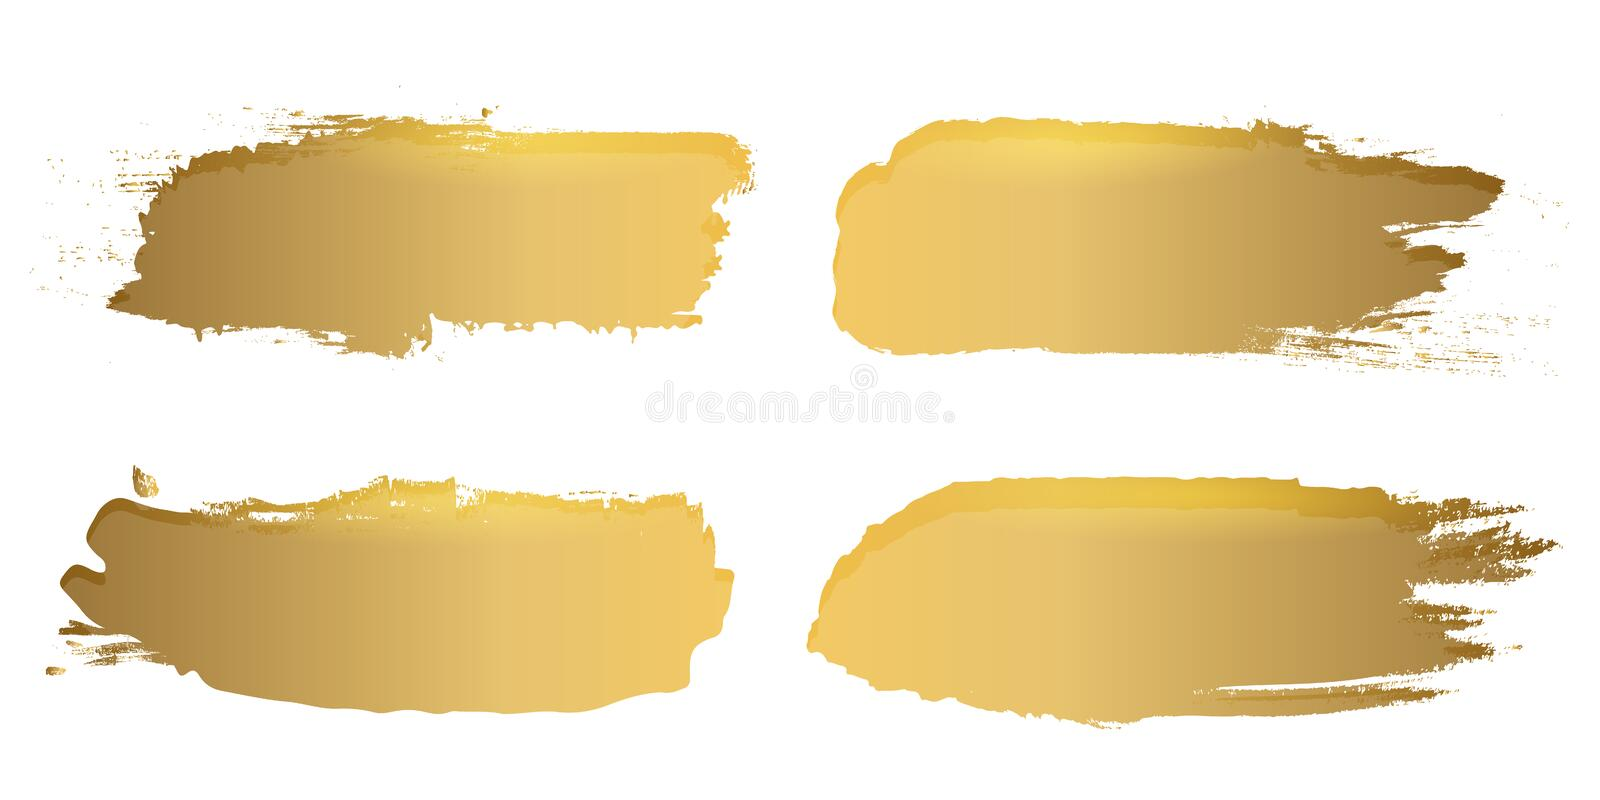 Creative illustration of grunge gold rough brush strokes isolated on background. Art design stains. Abstract concept graphic vector illustration